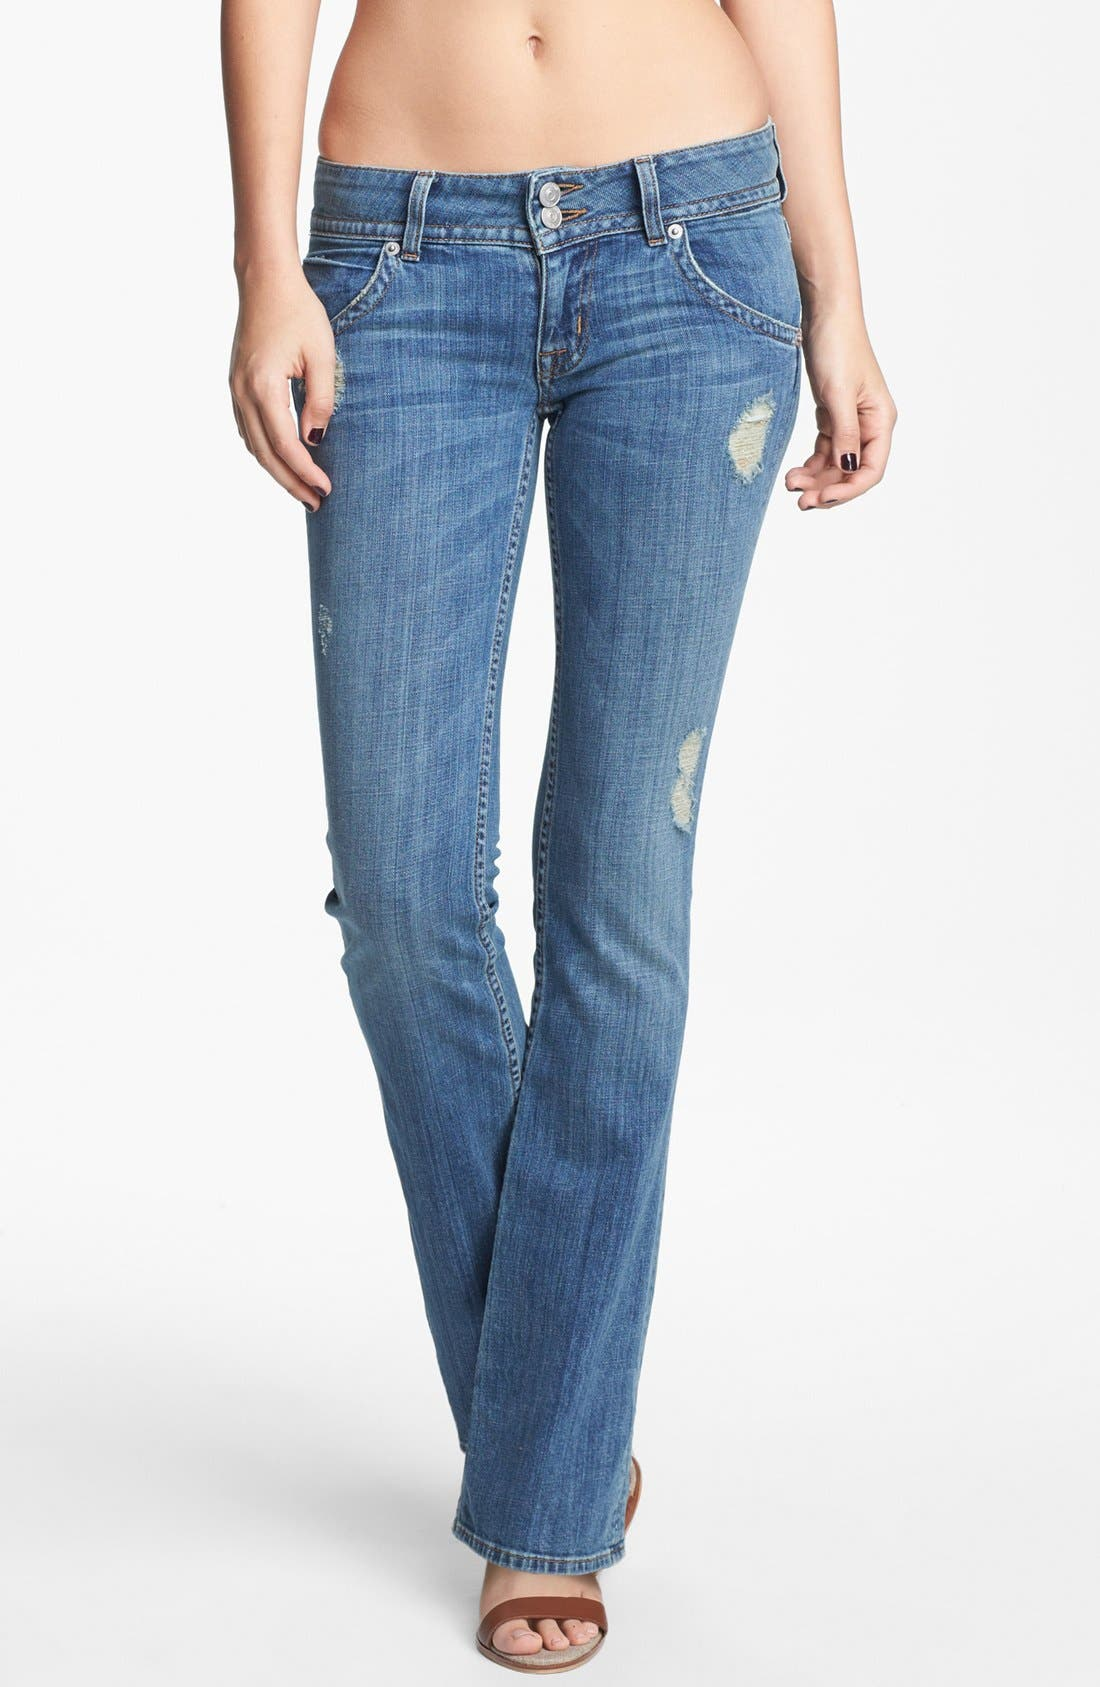 Alternate Image 1 Selected - Hudson Jeans Triangle Pocket Bootcut Stretch Jeans (Vintage Napoli) (Petite)